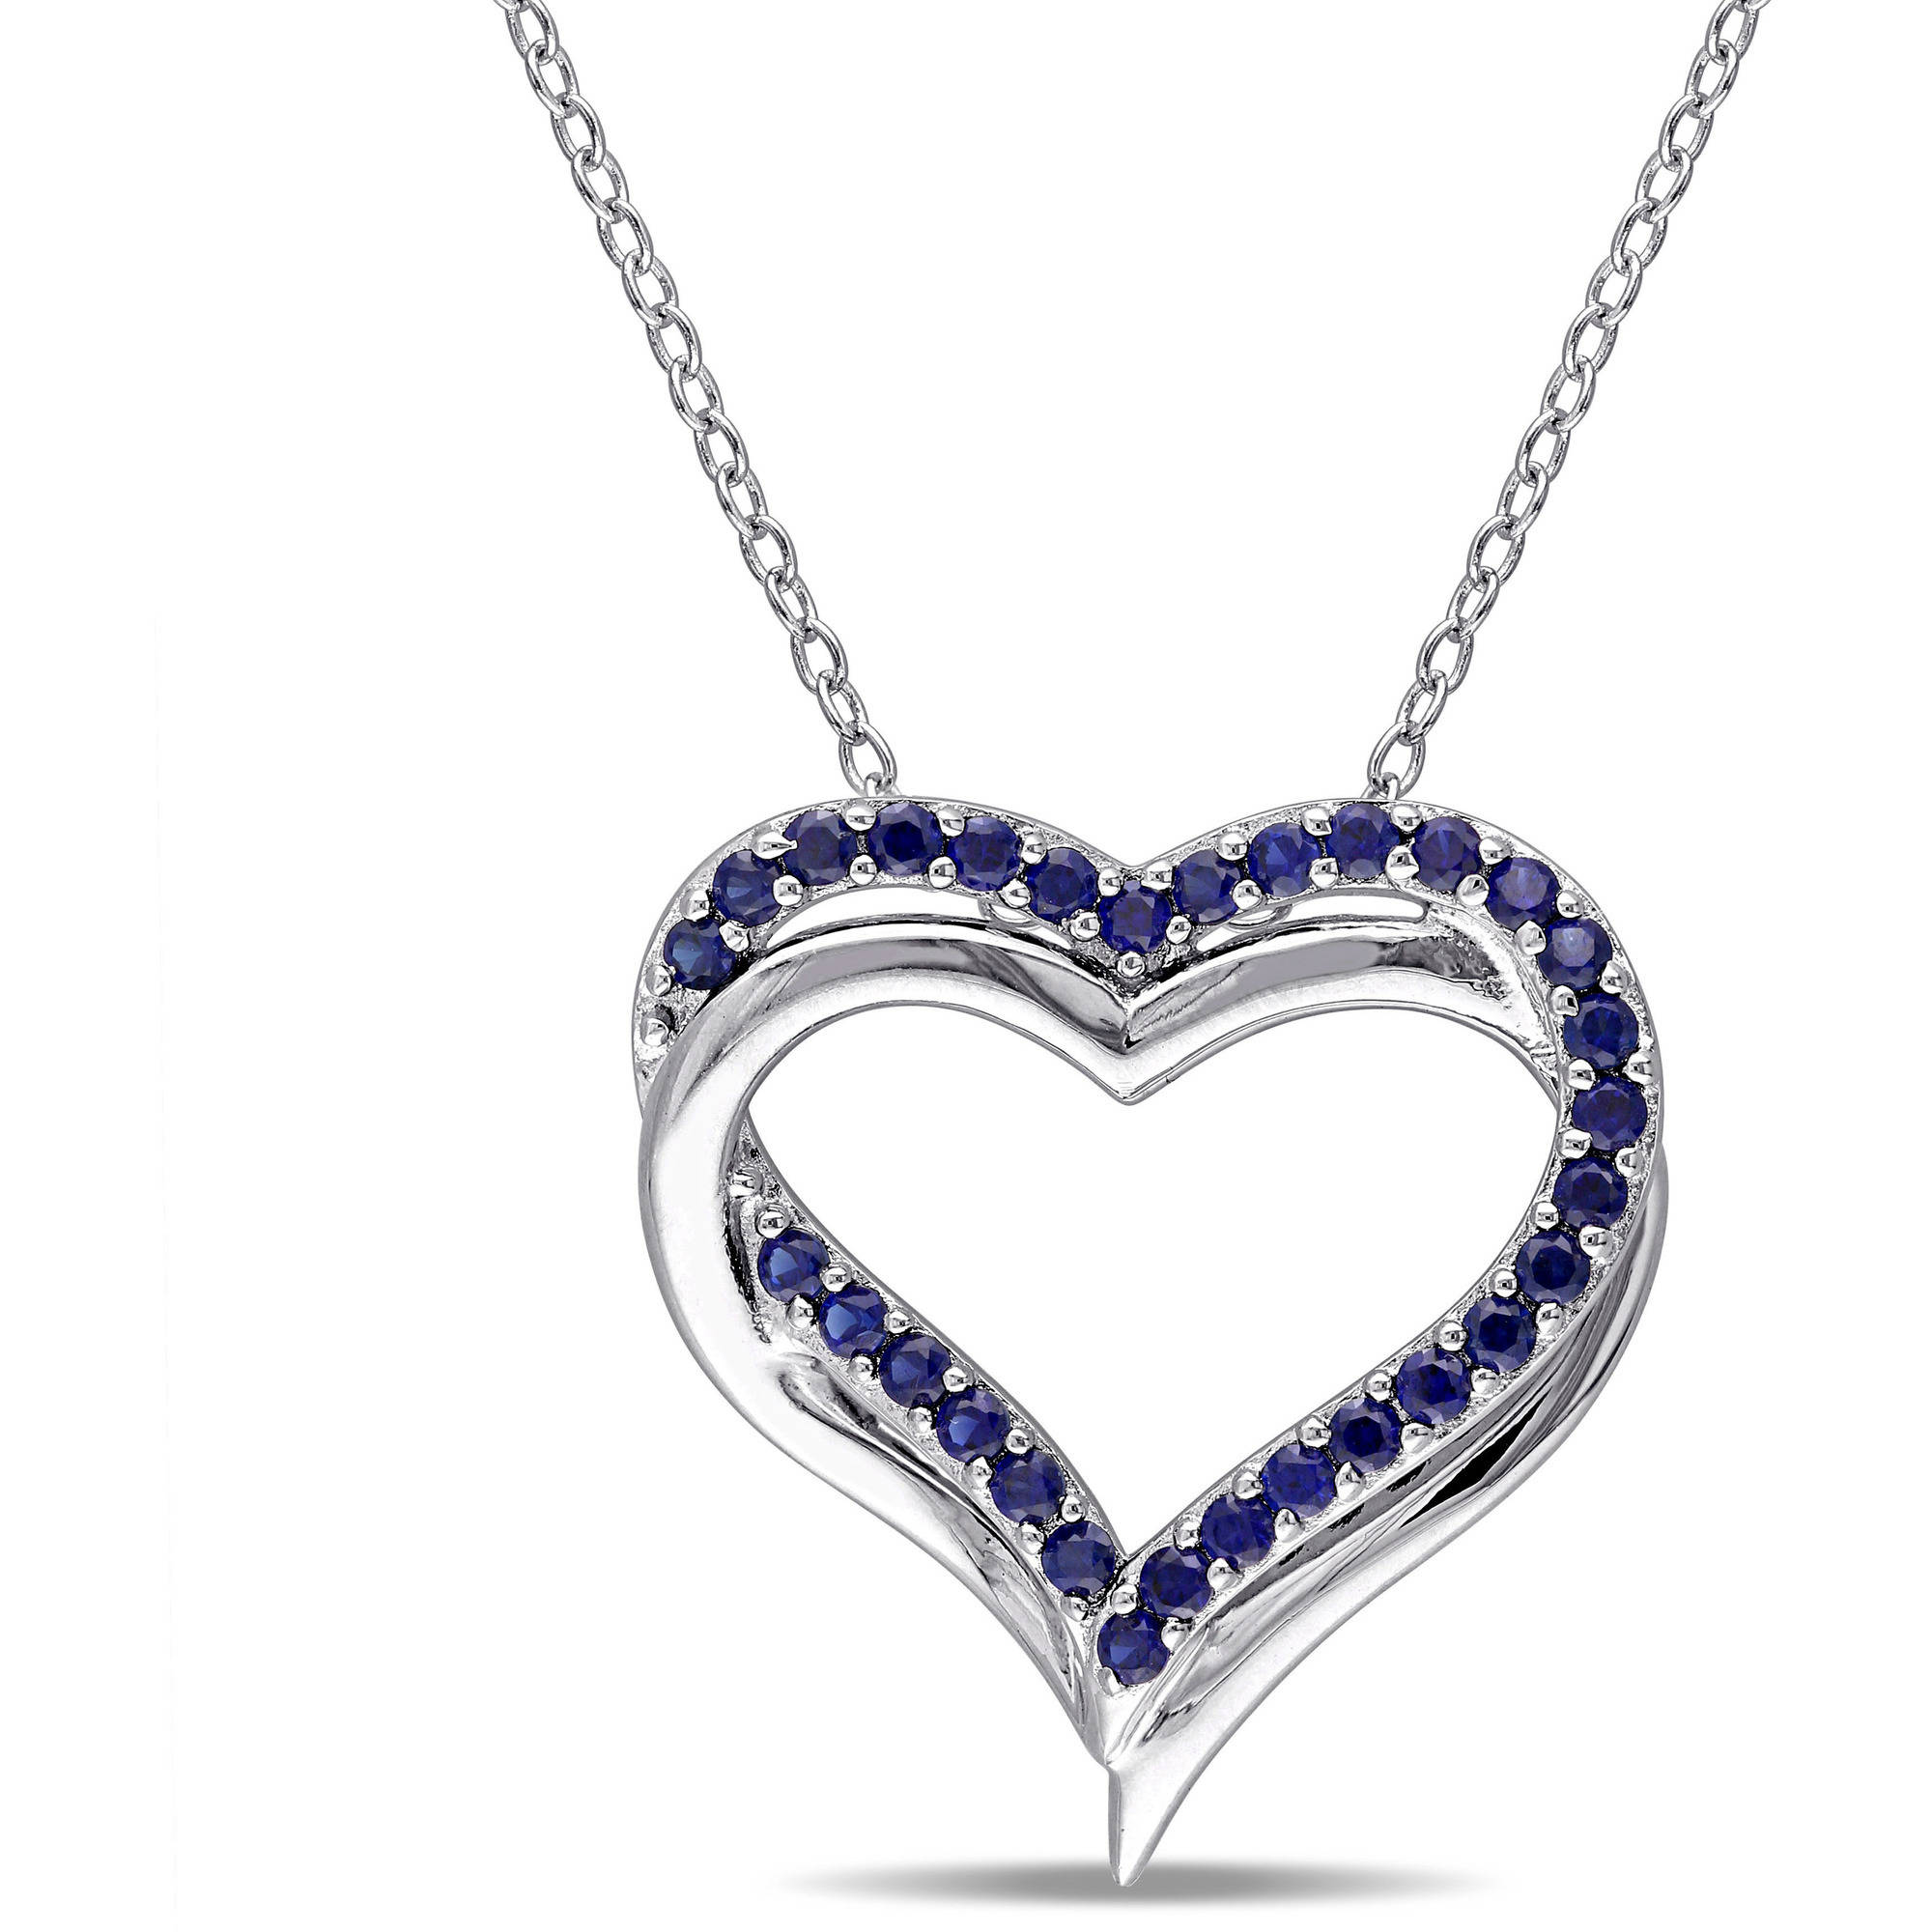 5/8 Carat T.G.W Created Blue Sapphire Sterling Silver Heart Interlocking Pendant